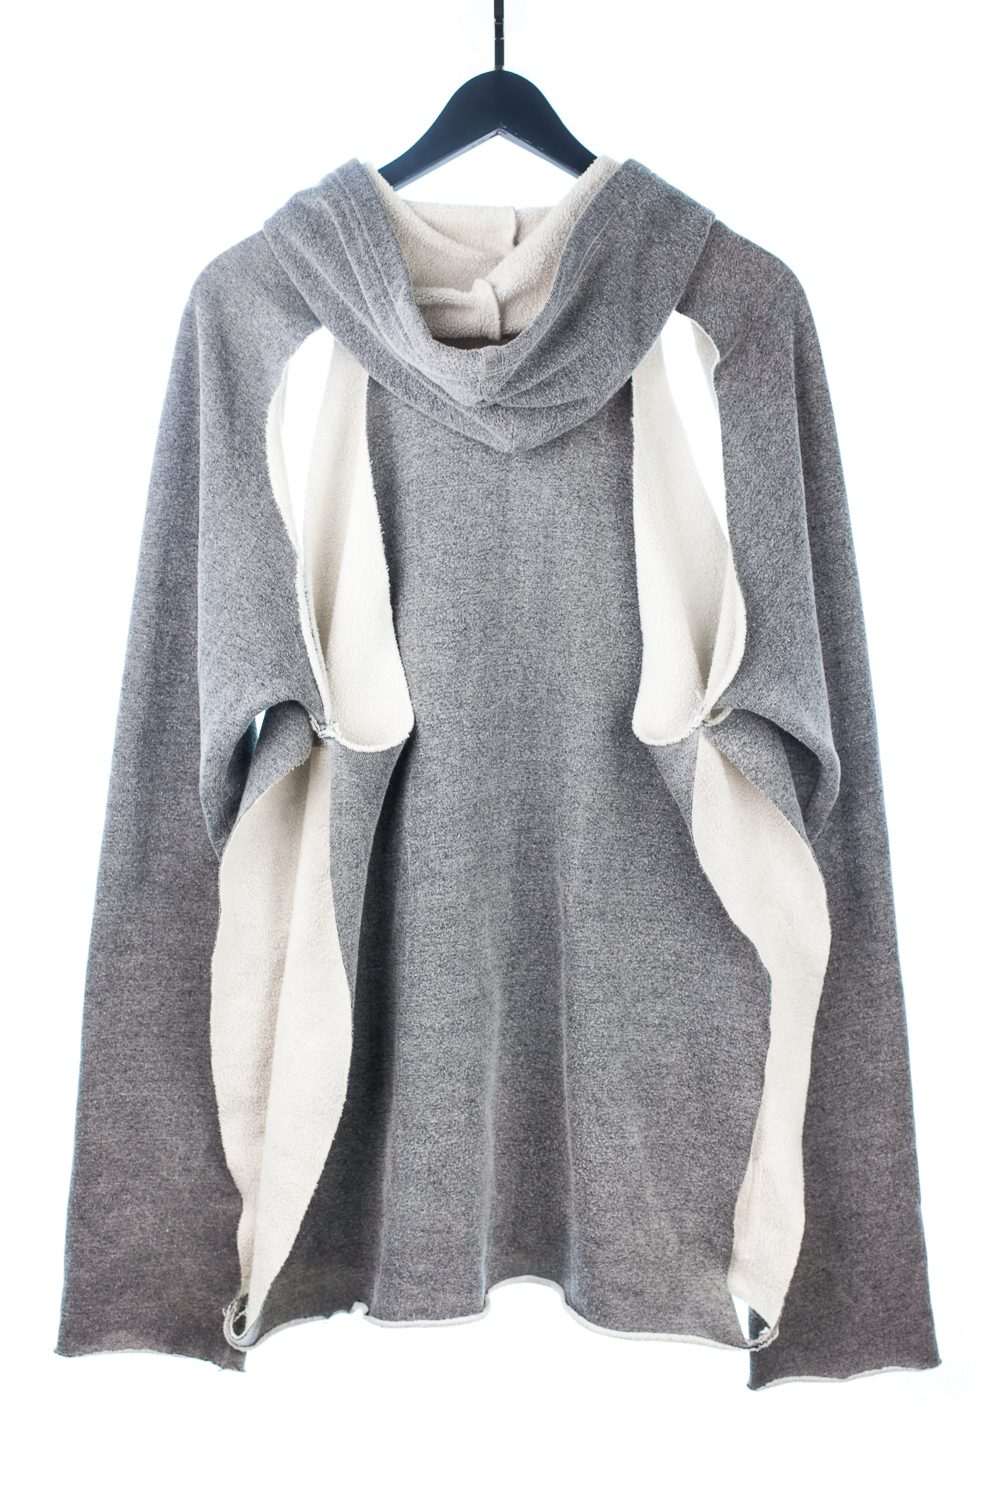 "SS03 ""Consumed"" Grey Cutout Hooded Sweater"